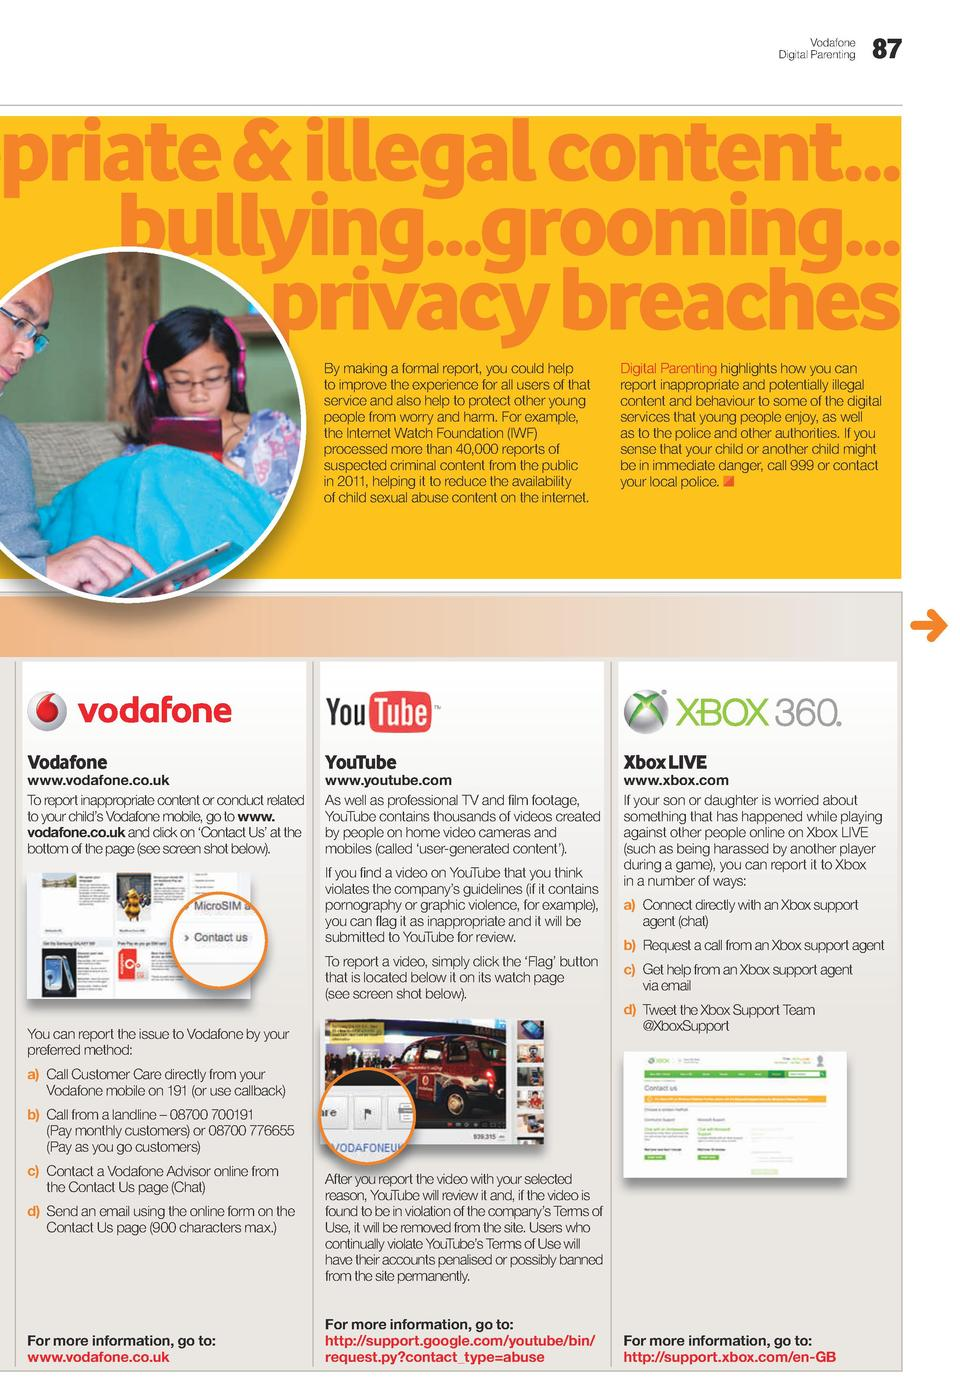 Vodafone Digital Parenting  87  opriate   illegal content... bullying...grooming... privacy breaches By making a formal re...